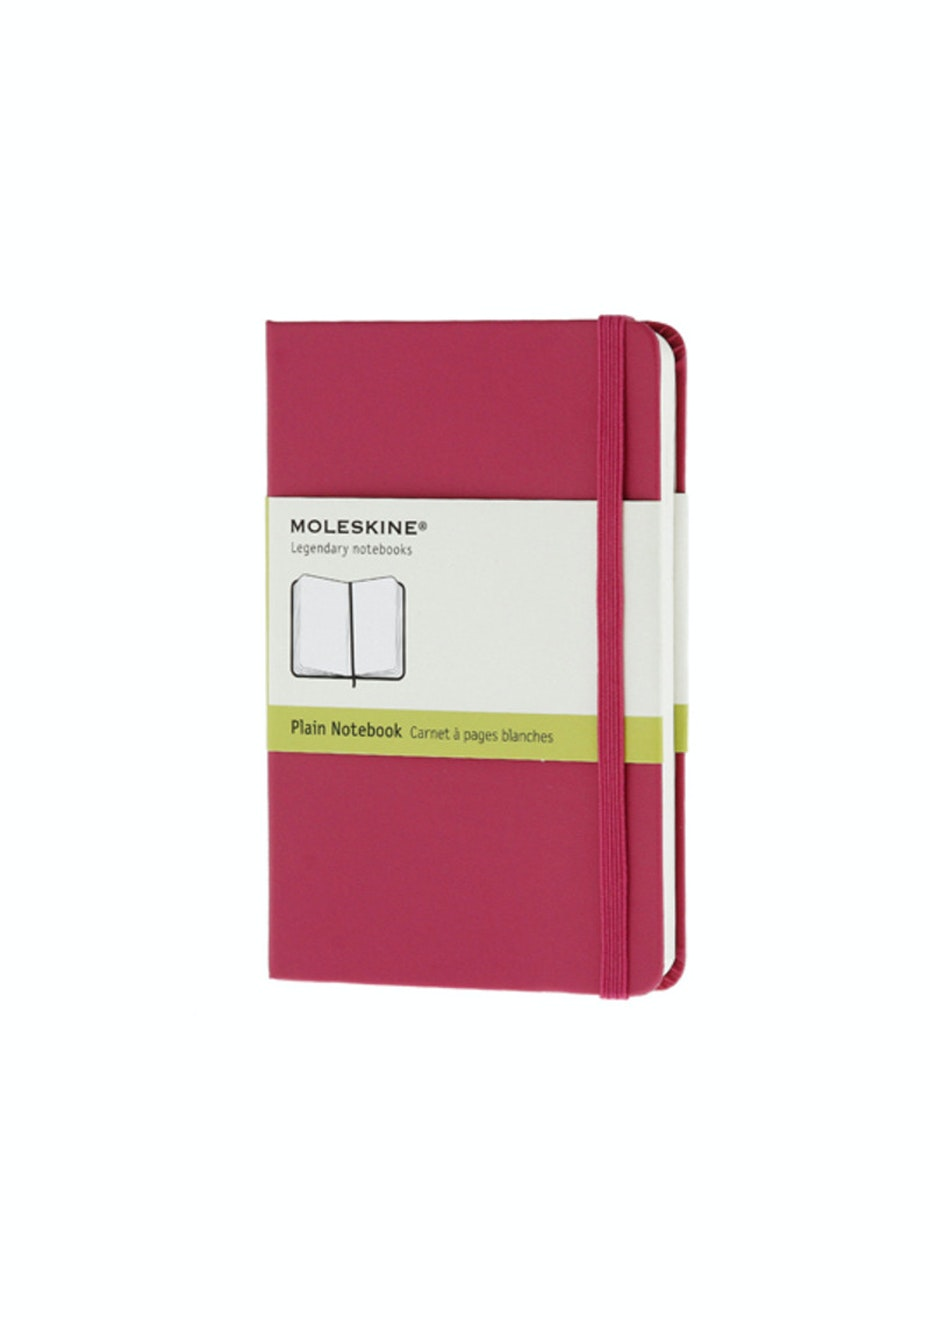 Moleskine - Classic Hard Cover Notebook - Plain - Pocket - Magenta